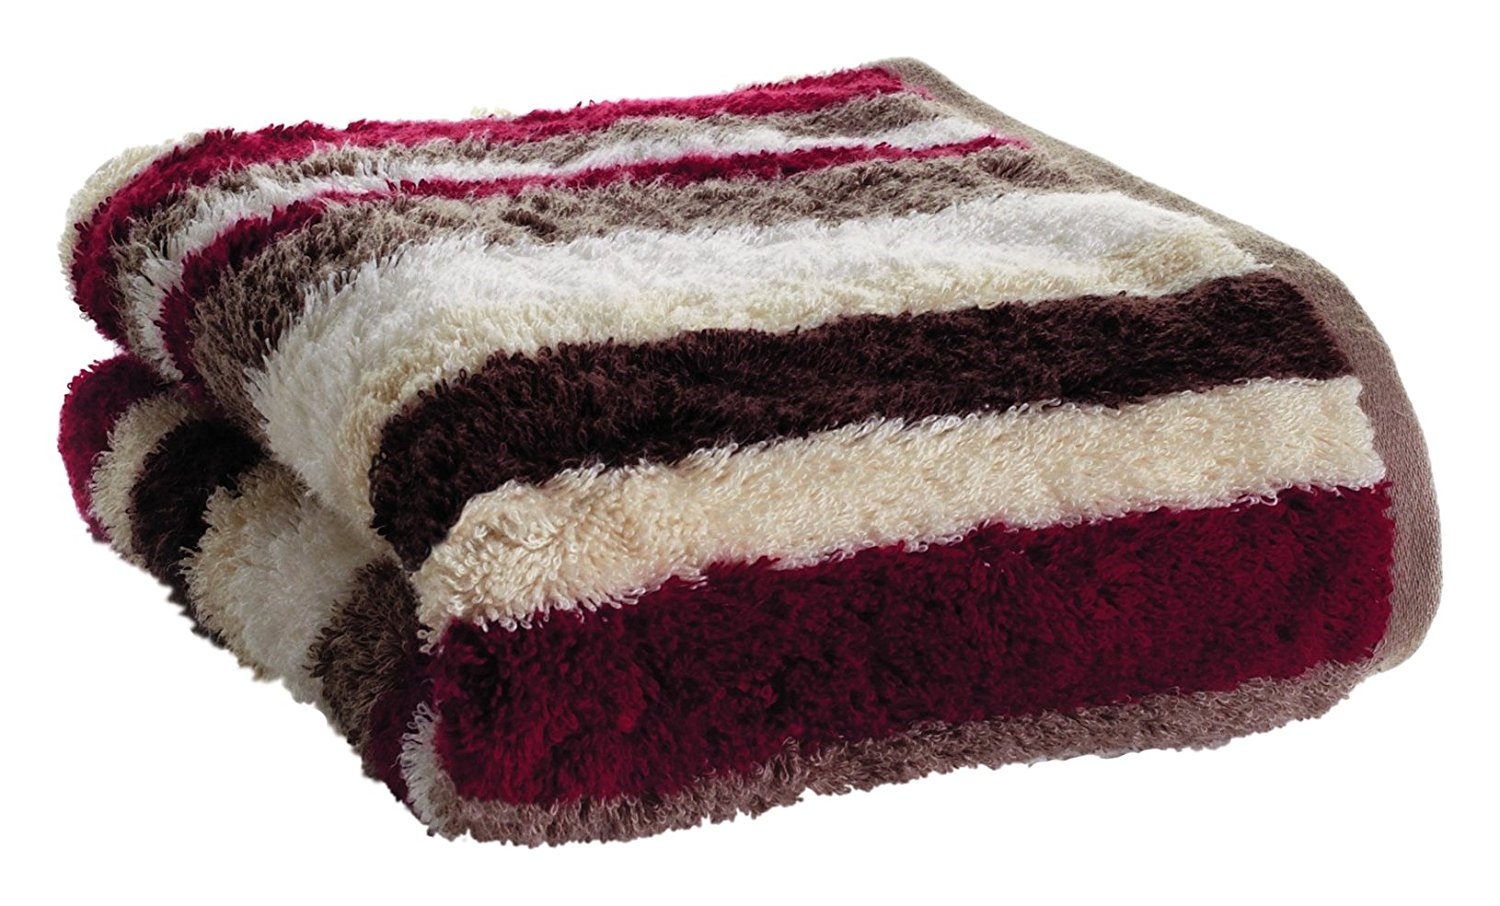 Daisy House Striped Rayon Derived from Bamboo Towel Set (2 bath, 2 hand & 2 wash), Bordeaux